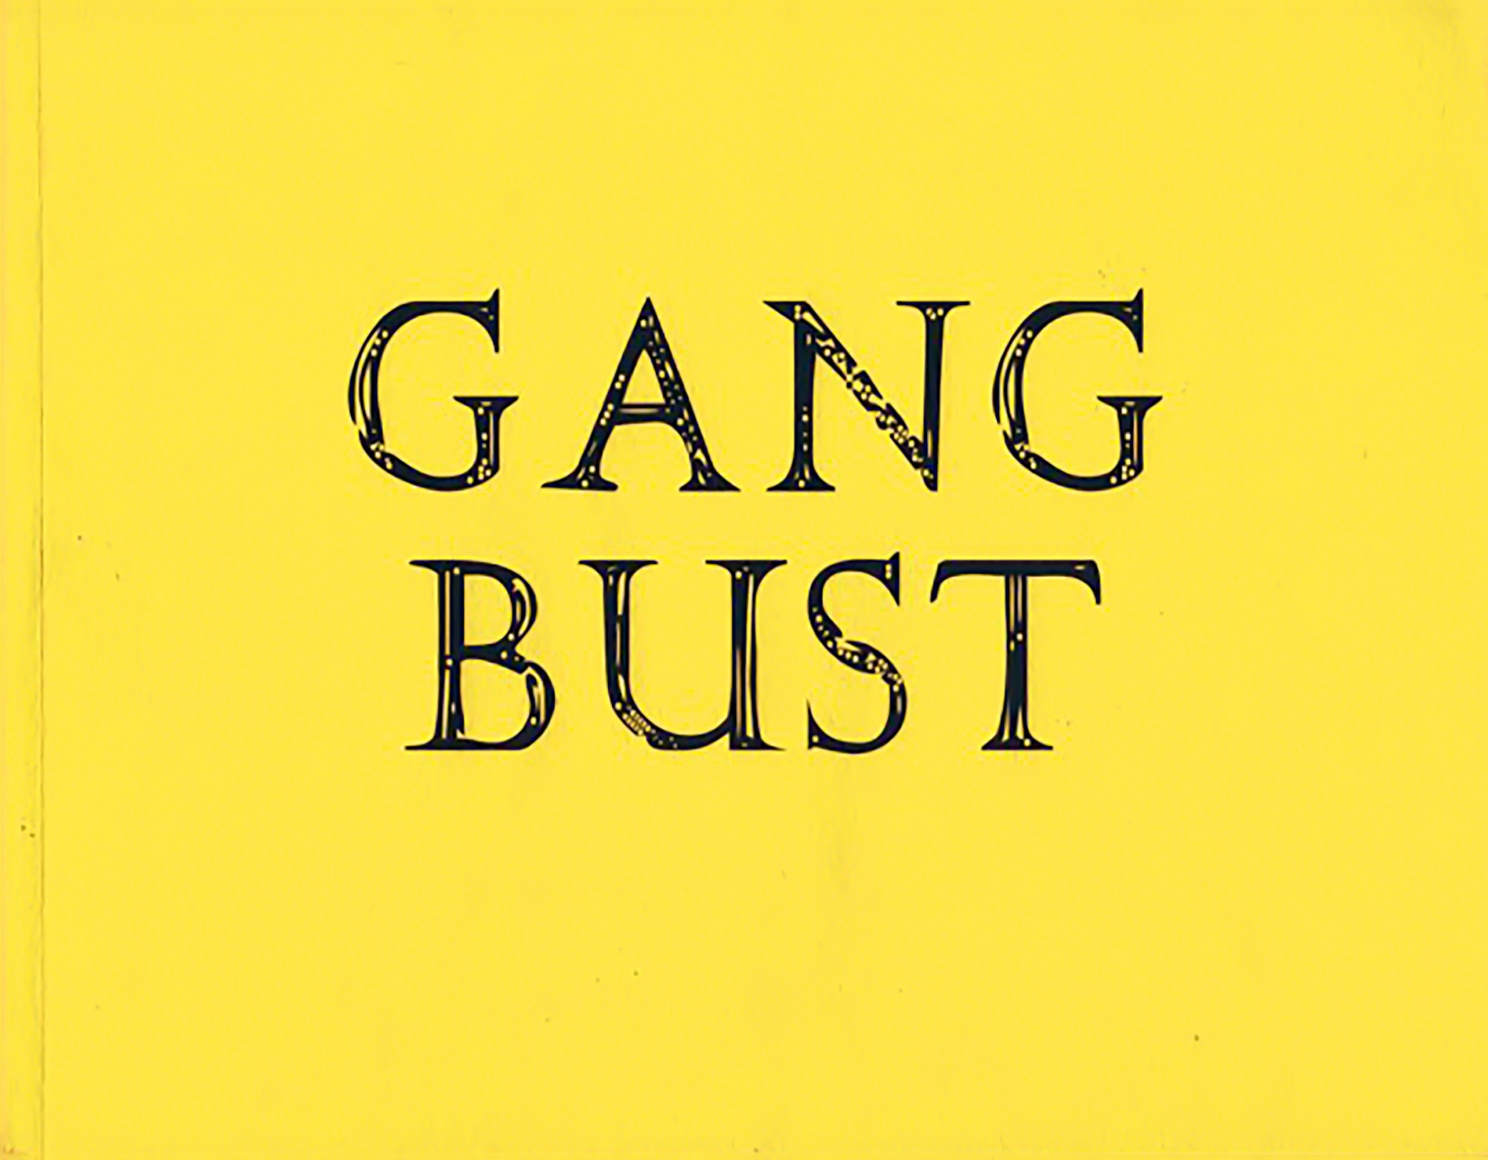 Cover of Gang Bust, William Copley & BFBC, Inc., published by Venus Over Manhattan, New York, 2013